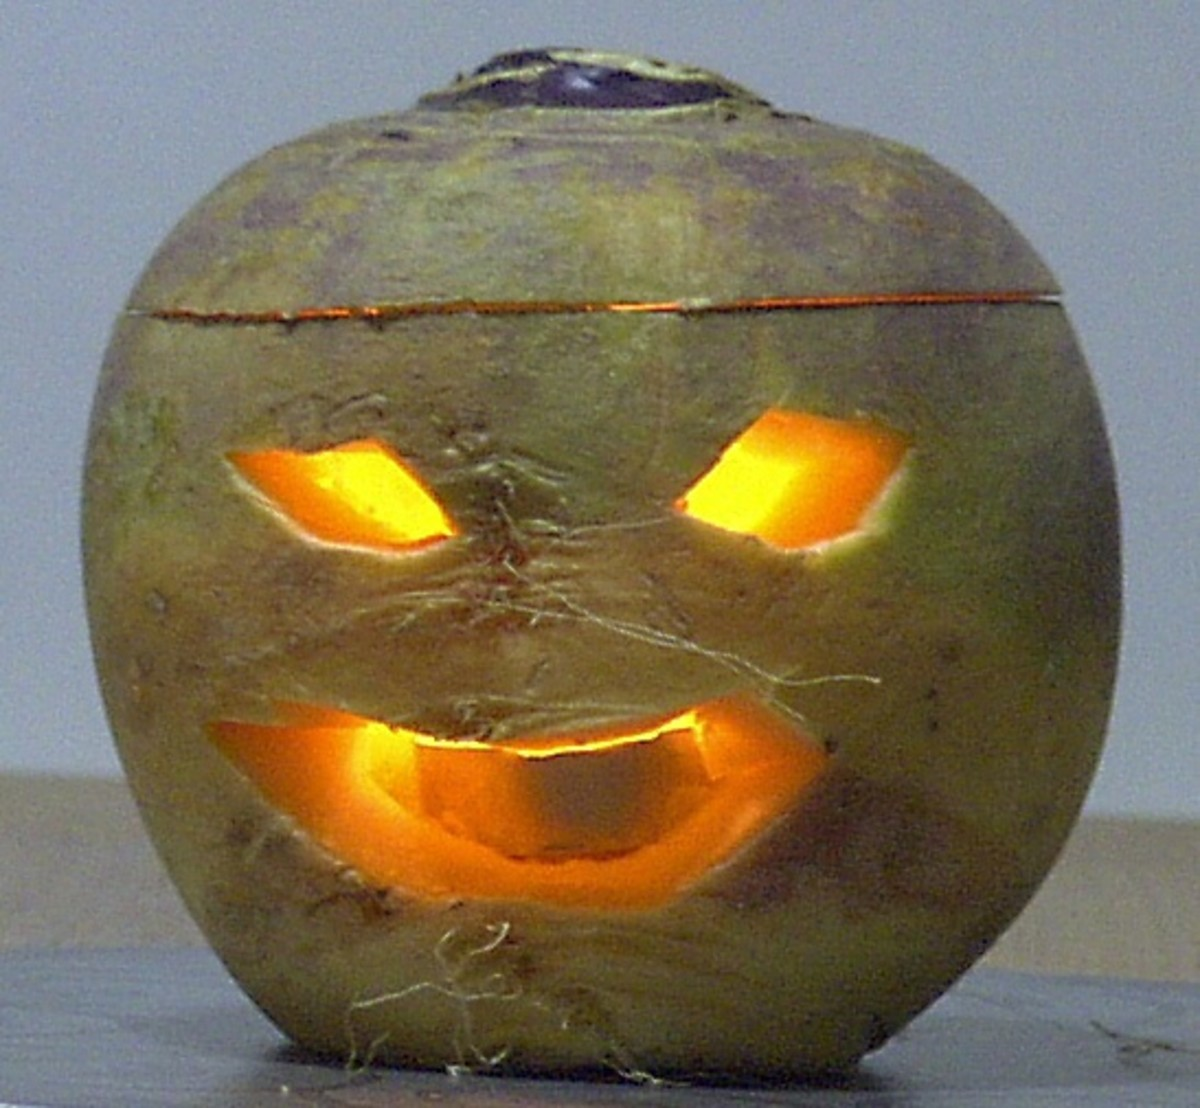 A modern jack o'lantern made from a turnip